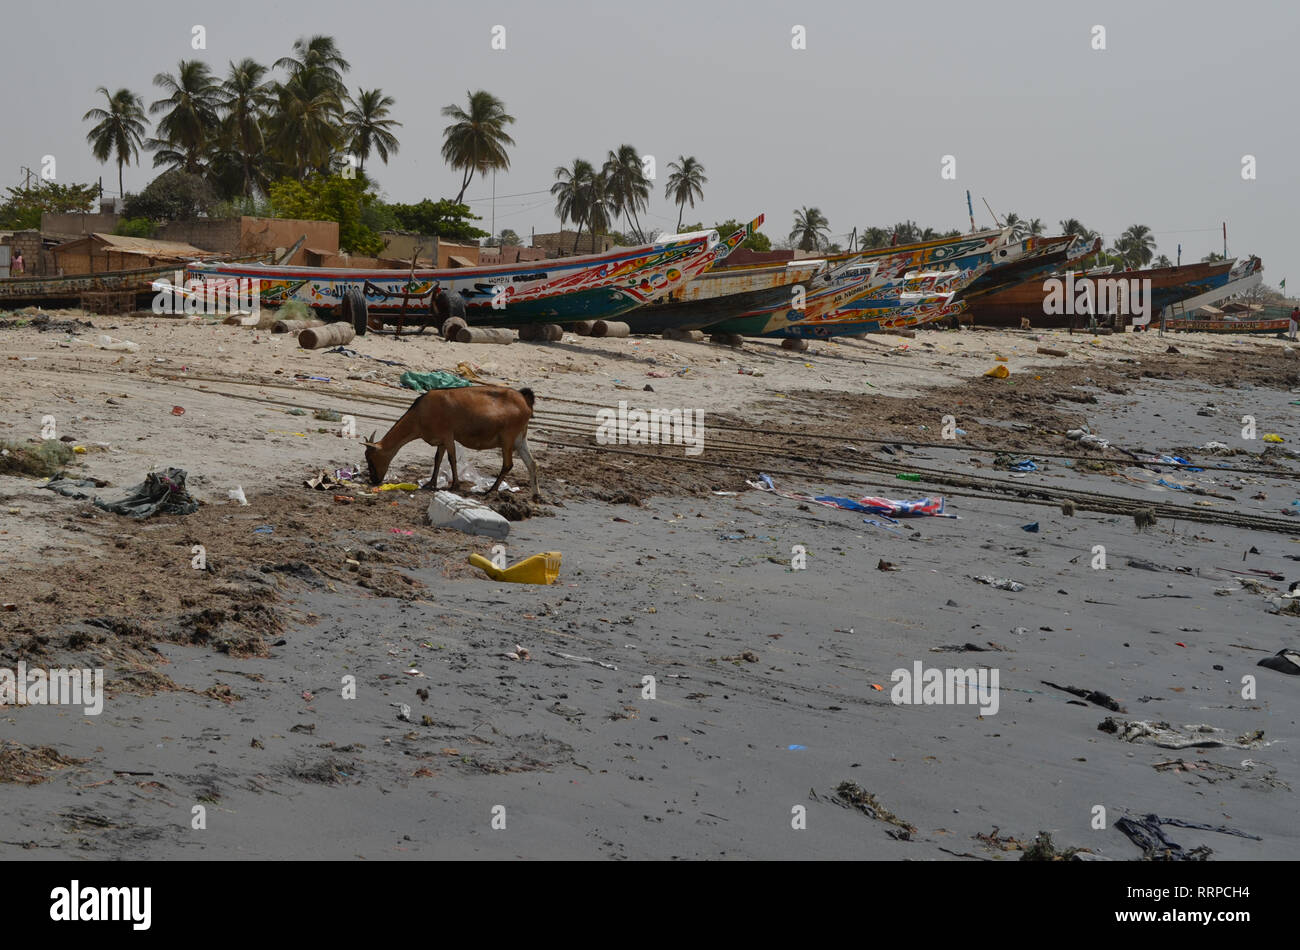 A goat forages for food amongst the litter in a beach on Senegal's Petite Cote, Western Africa Stock Photo